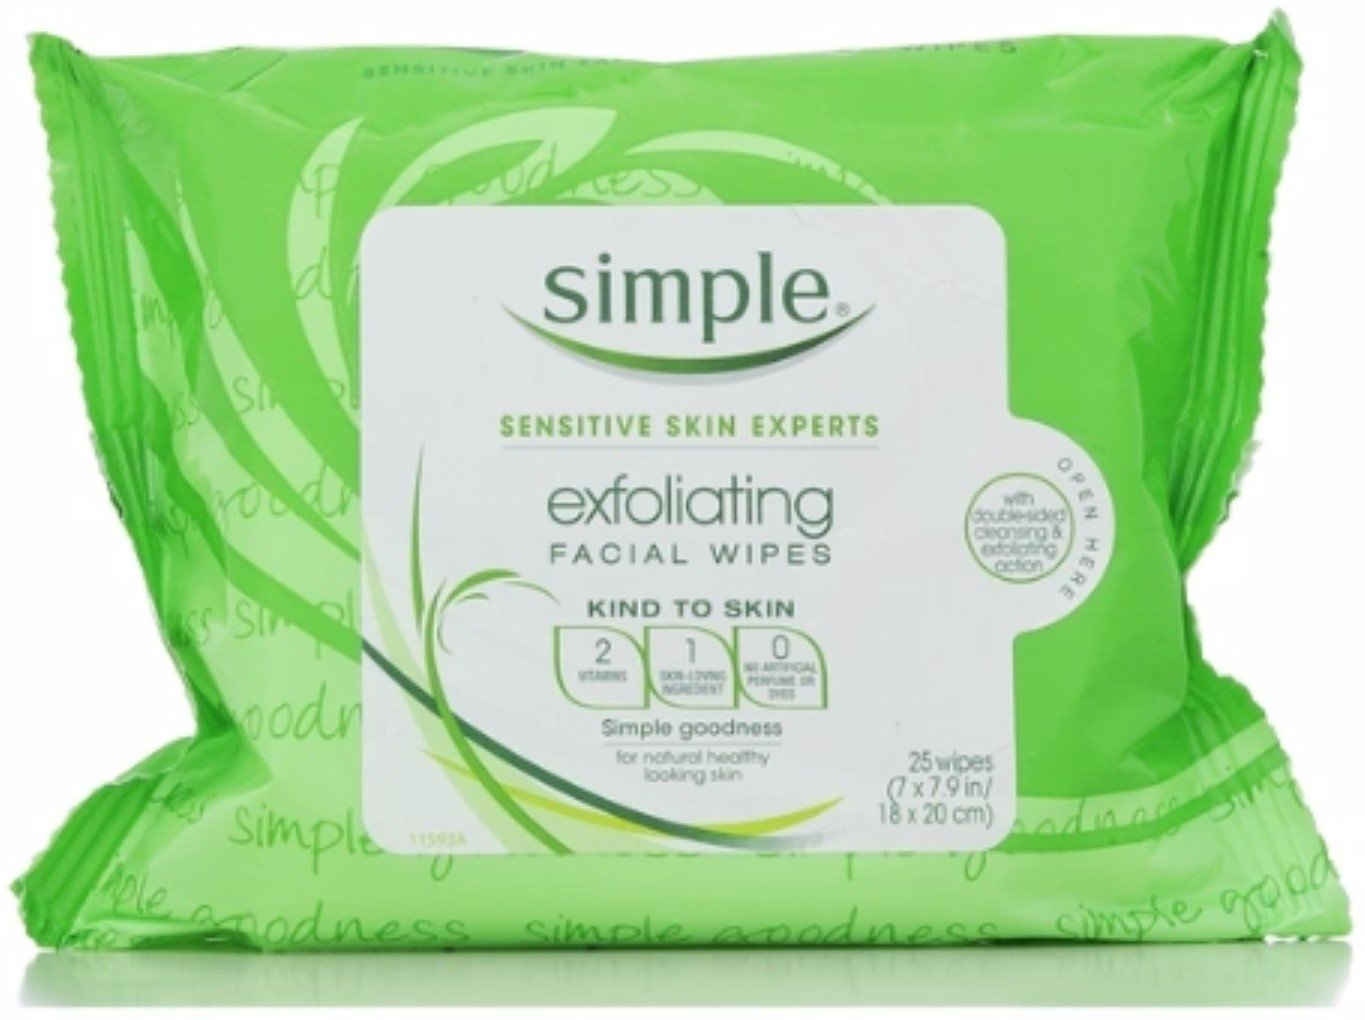 Simple Exfoliating Facial Wipes 25 Each (9 Pack)